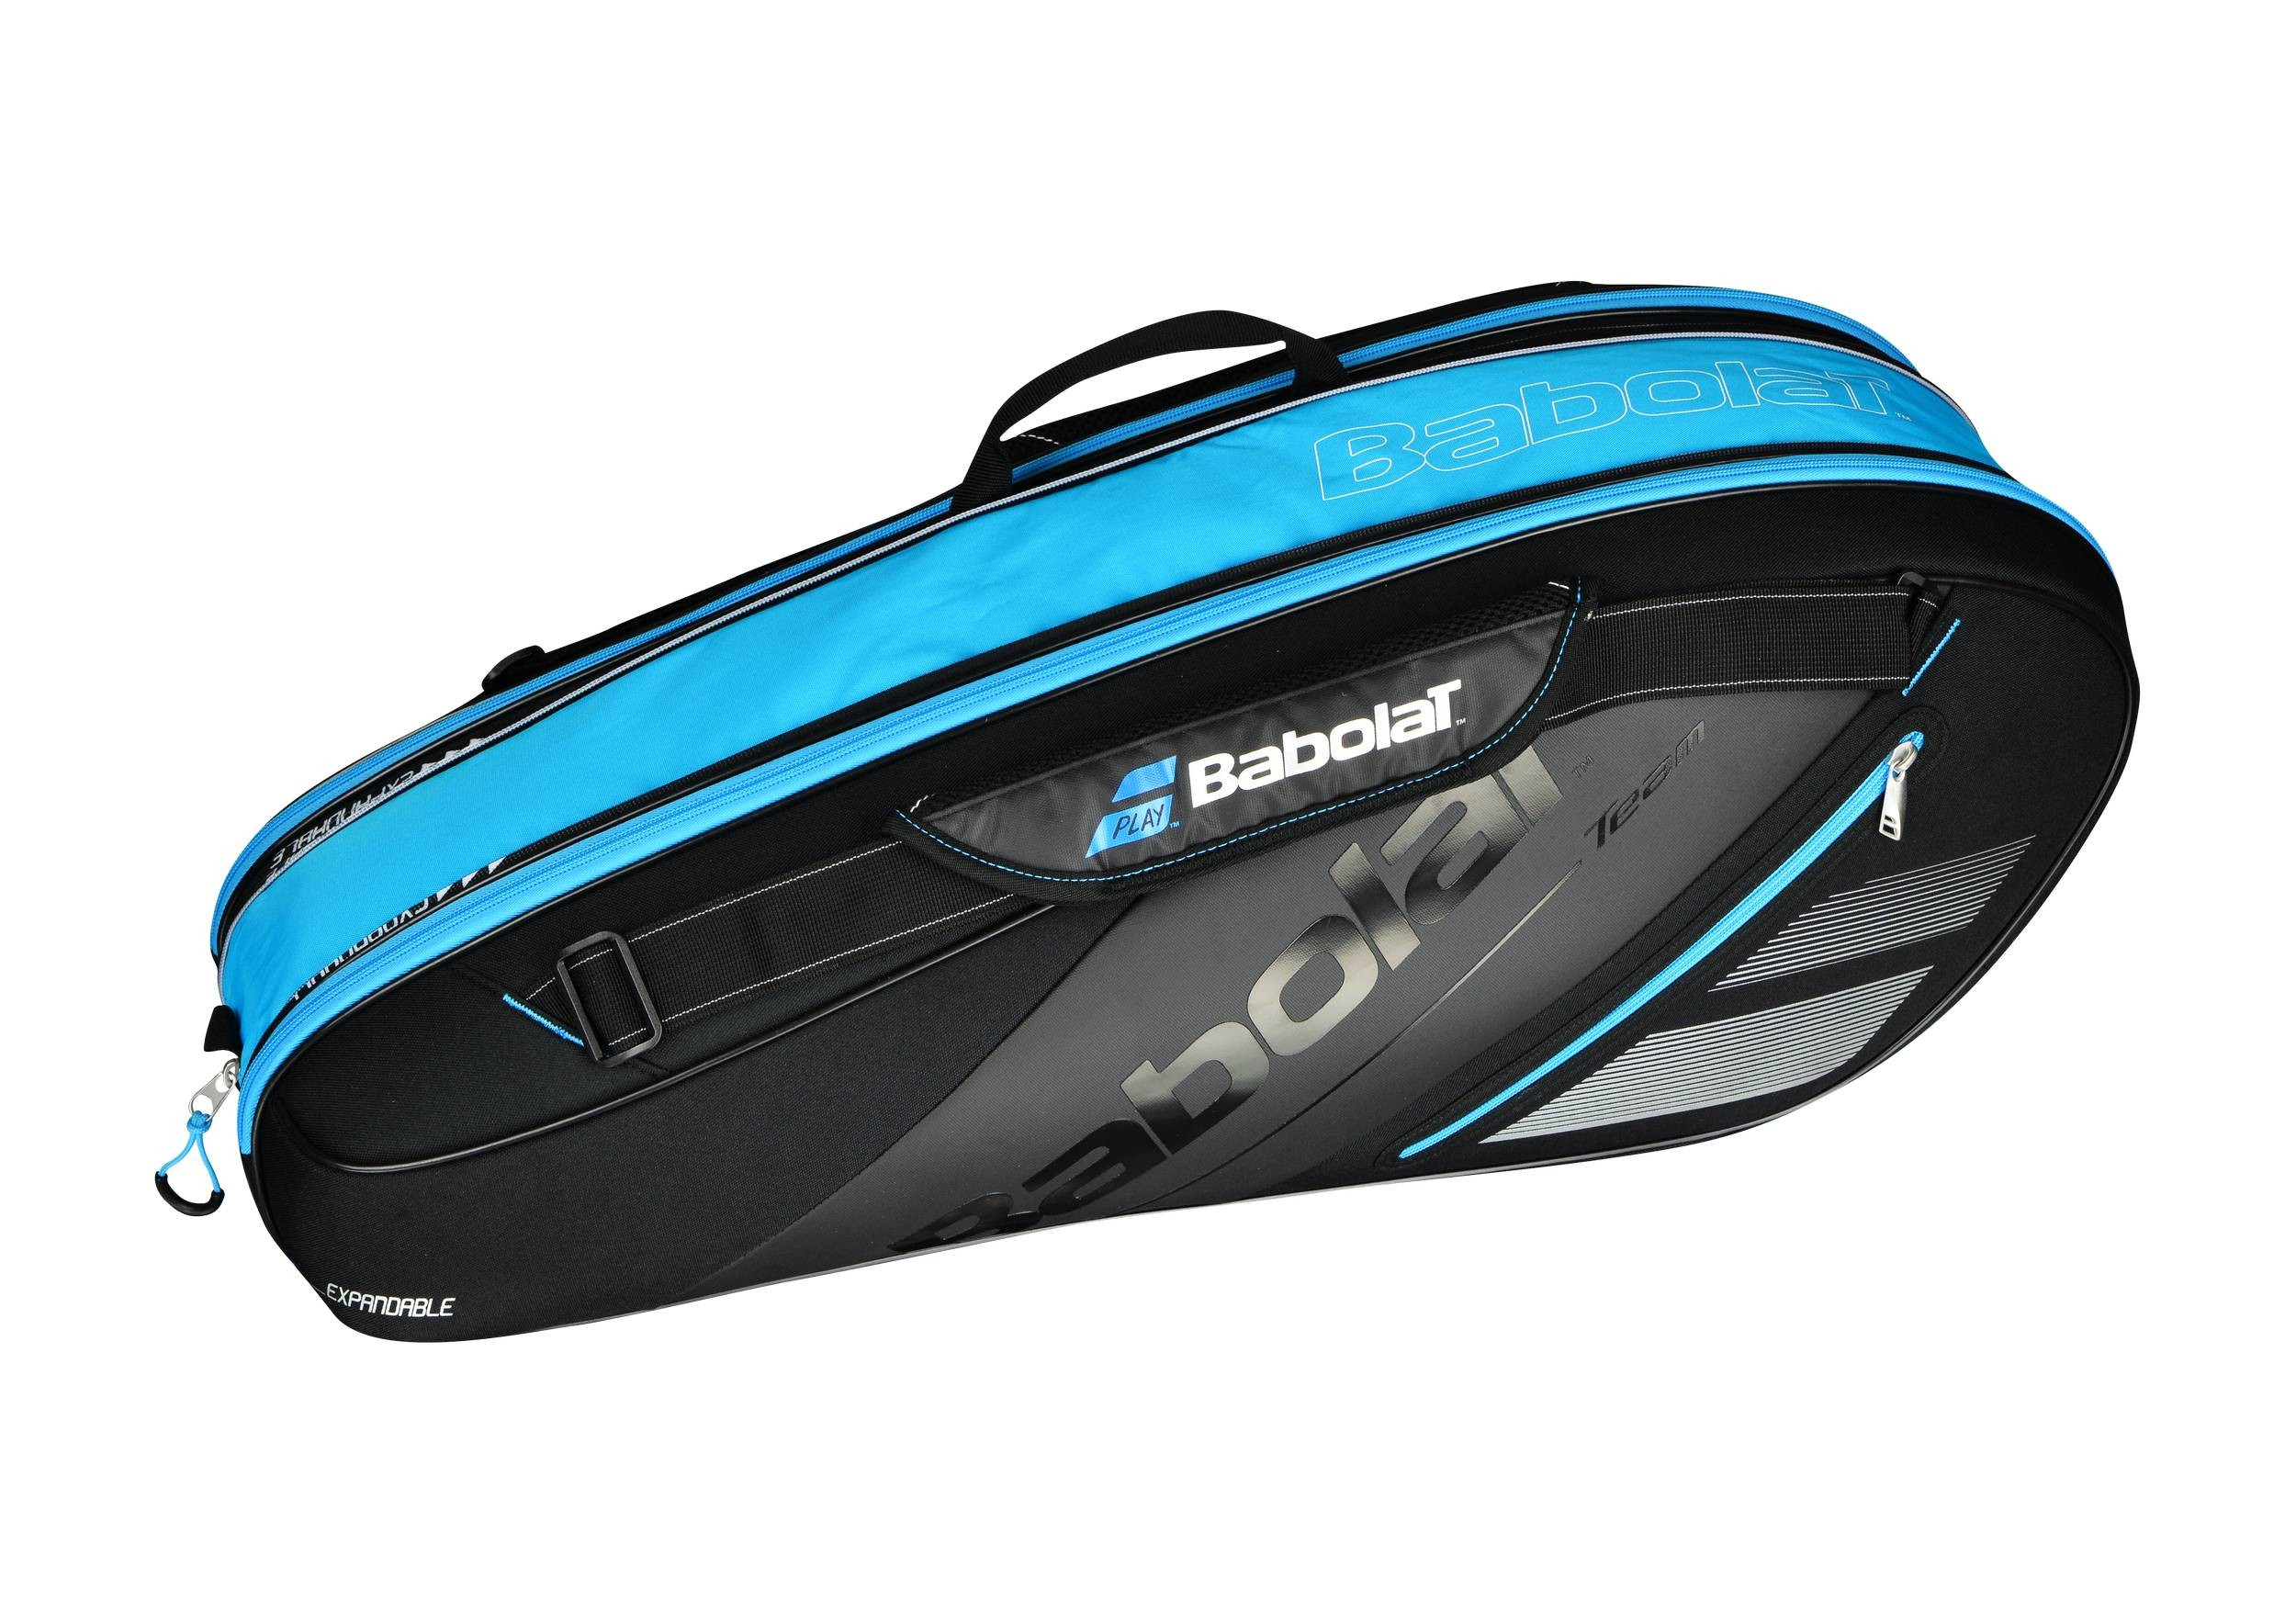 Torba tenisowa Babolat Team x6 Expandable Black/Blue 2018